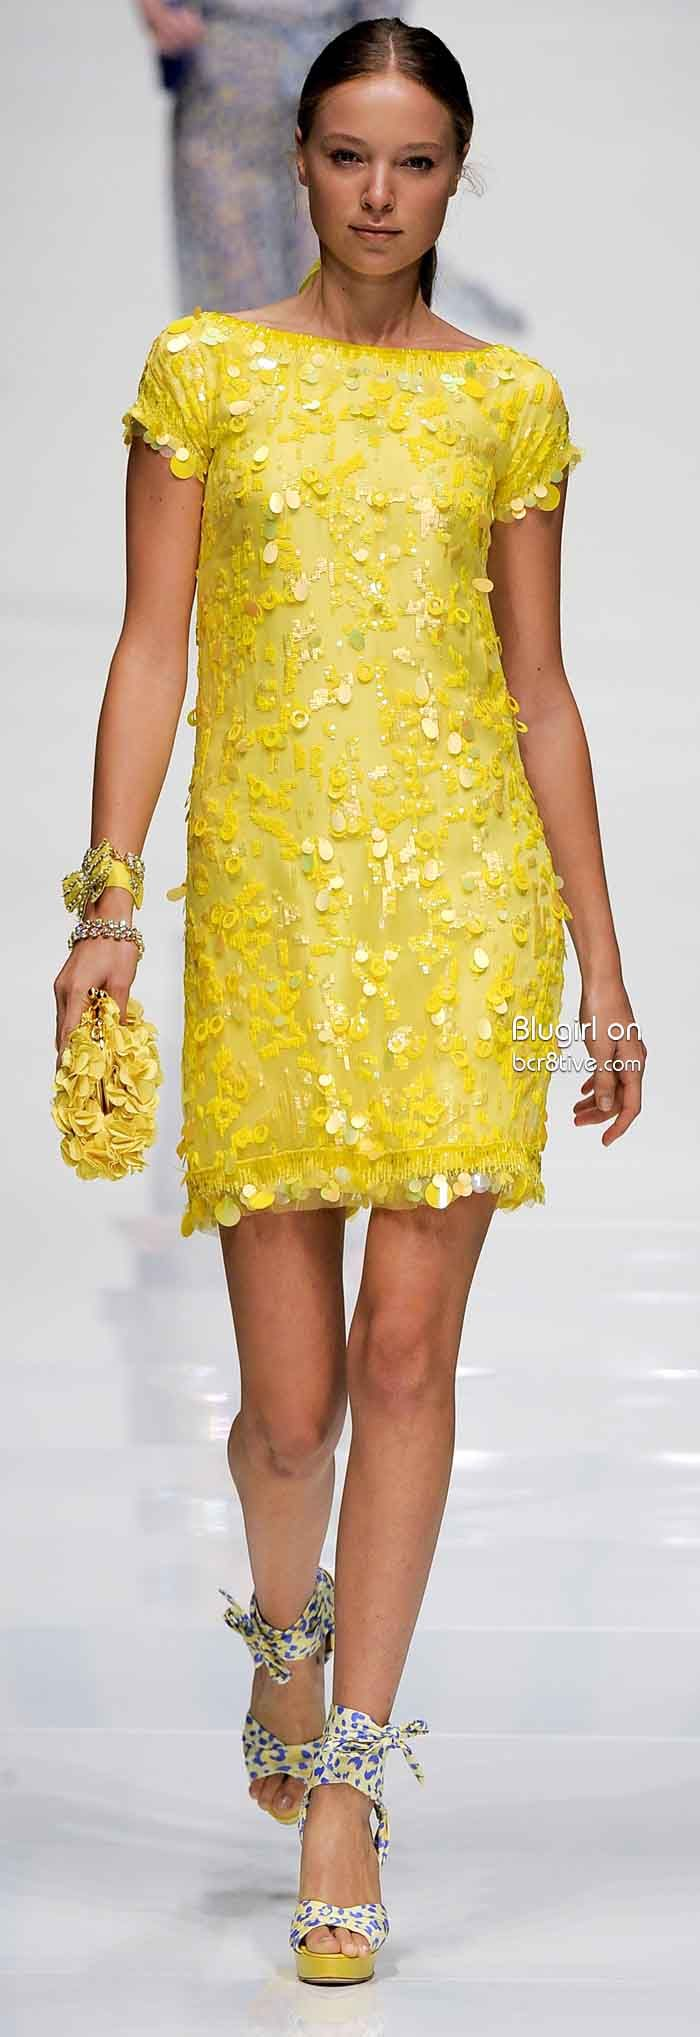 17 Best ideas about Light Yellow Dresses on Pinterest ...